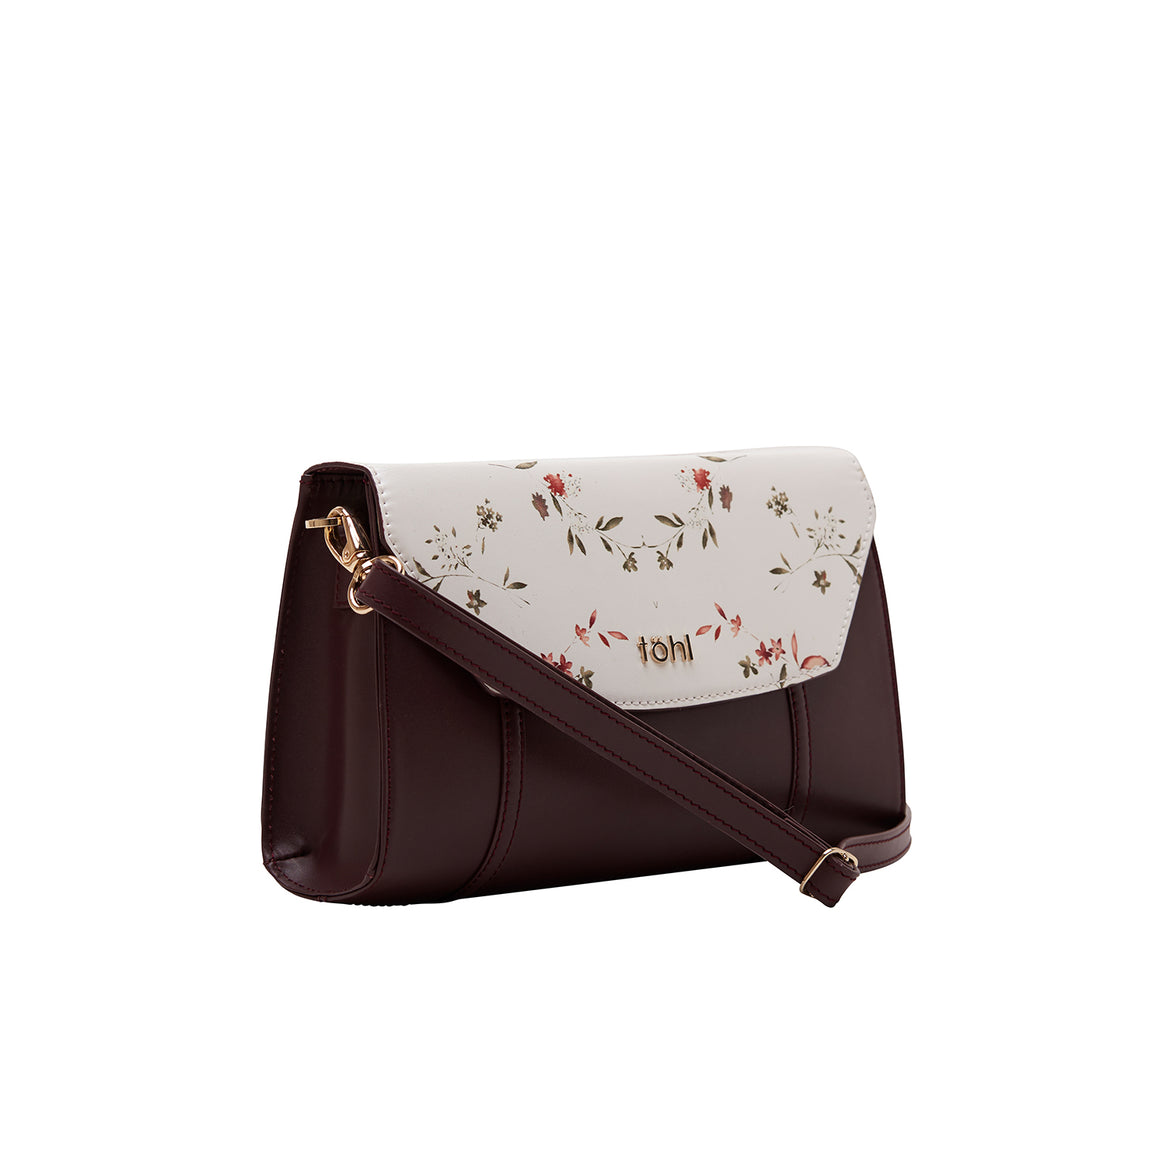 SG 0020 - TOHL ARBLAY WOMEN'S SLING AND CROSSBODY BAG - BURGUNDY